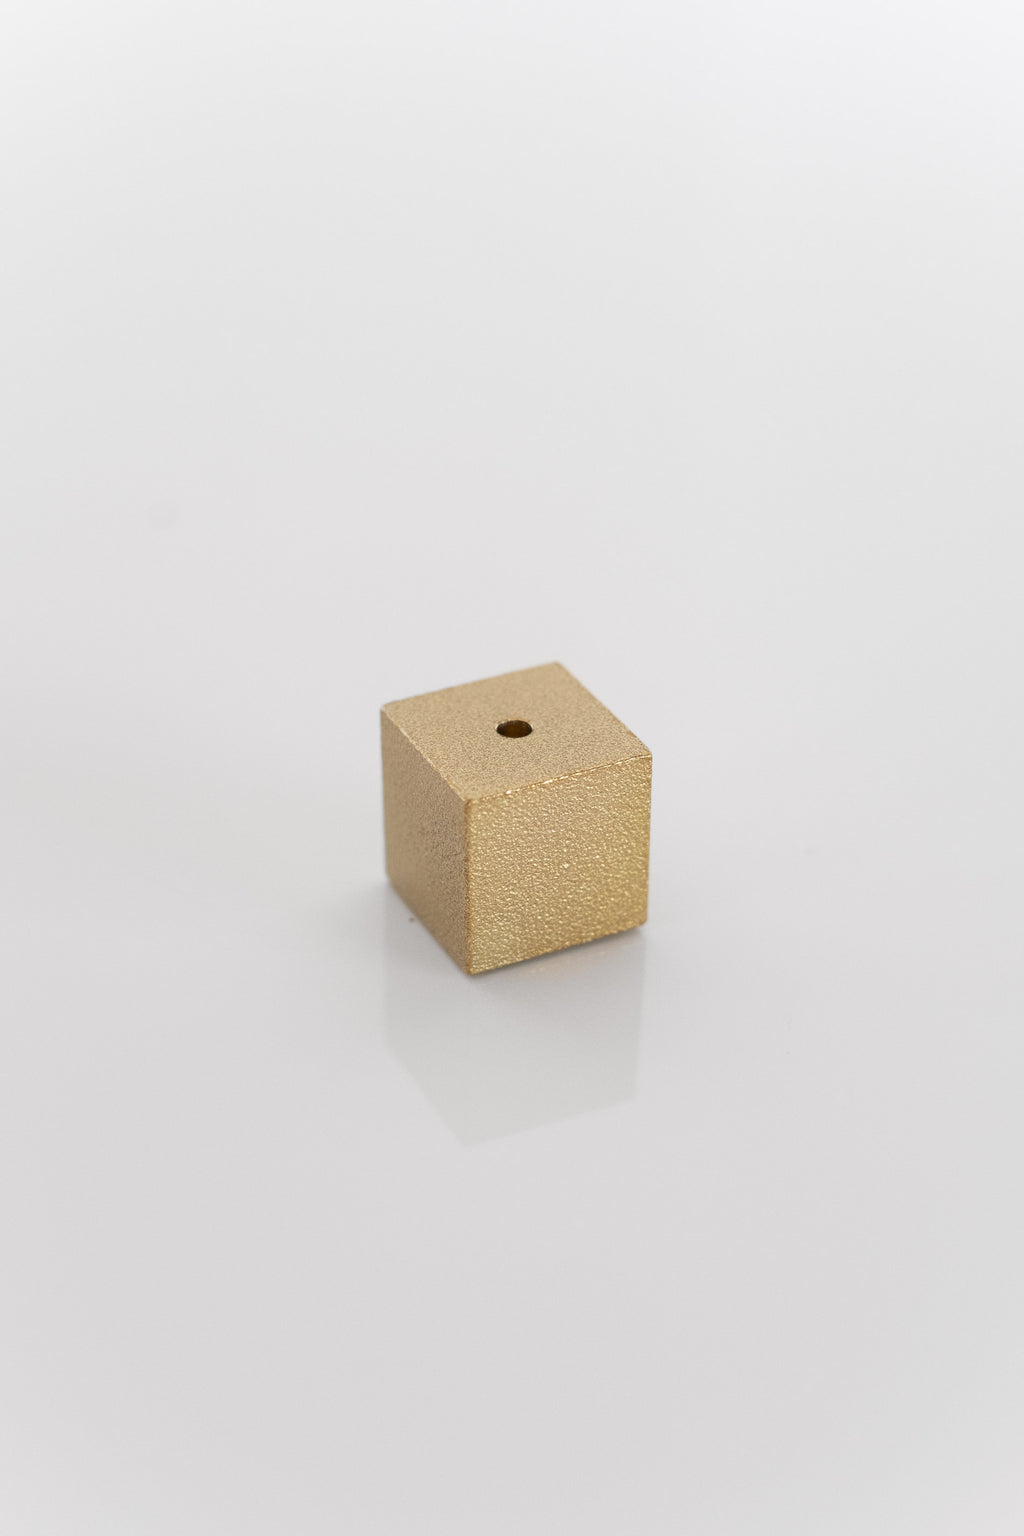 BRASS CUBE INCENSE HOLDER IN GOLD